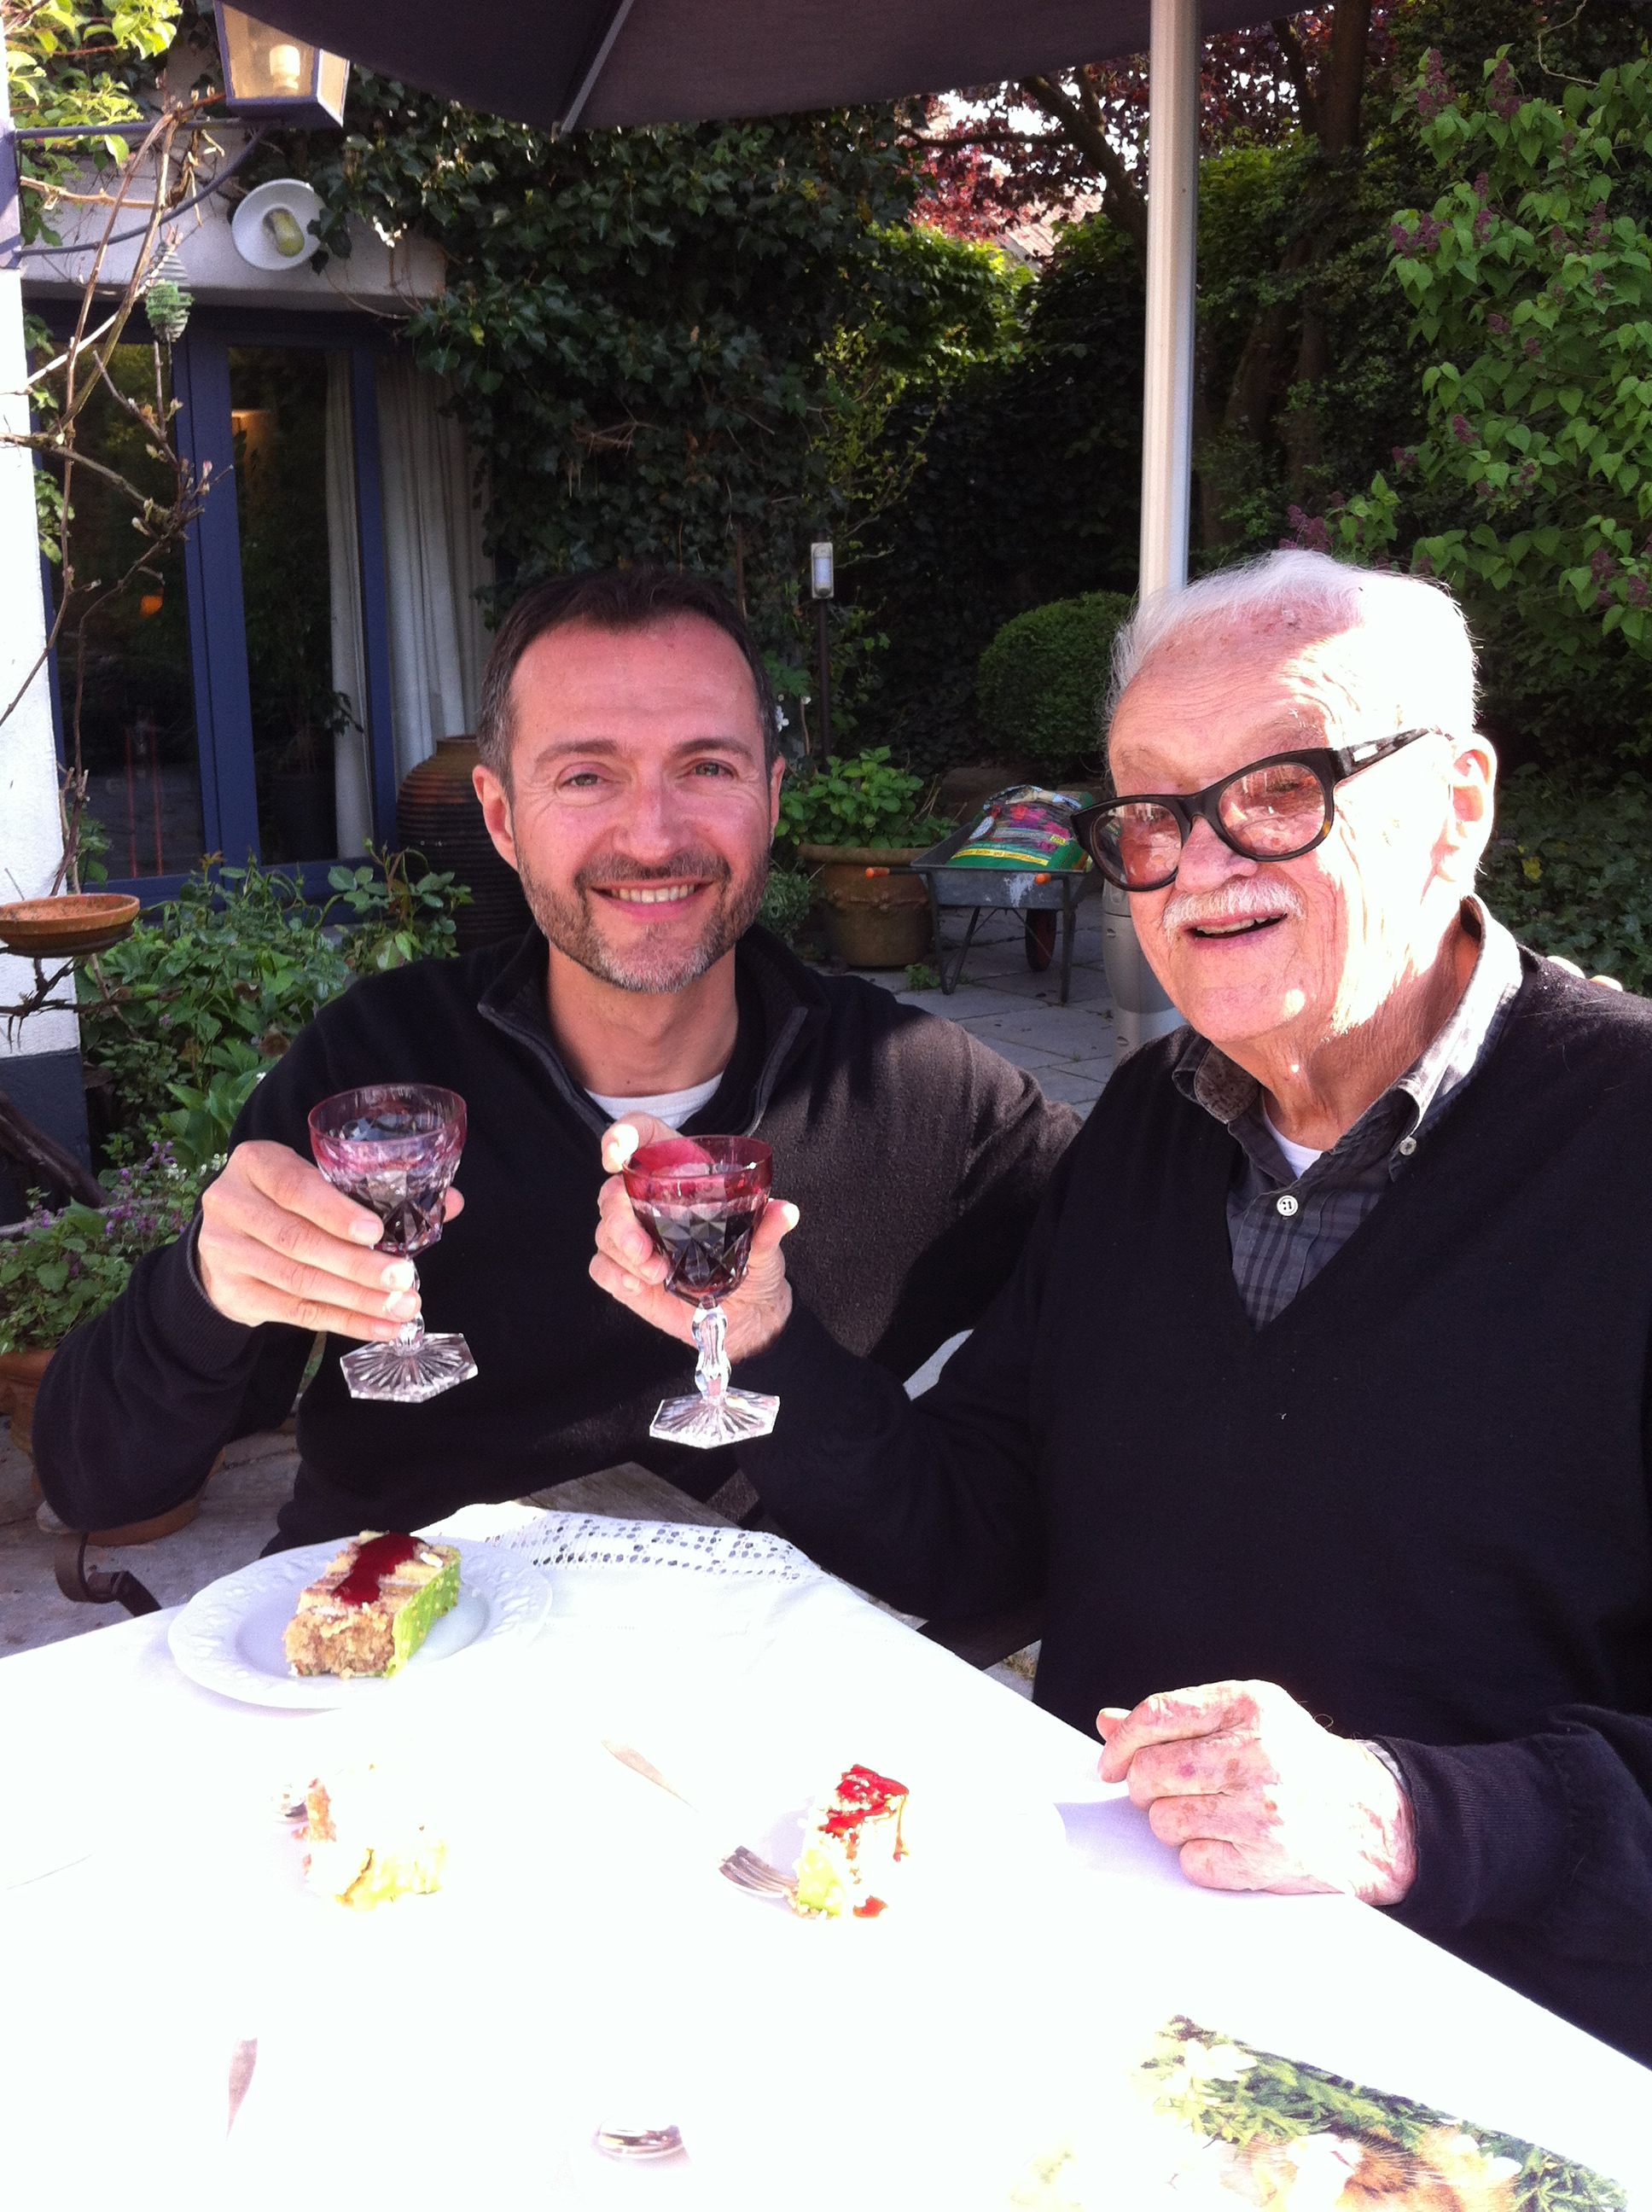 chilling with Toots Thielemans